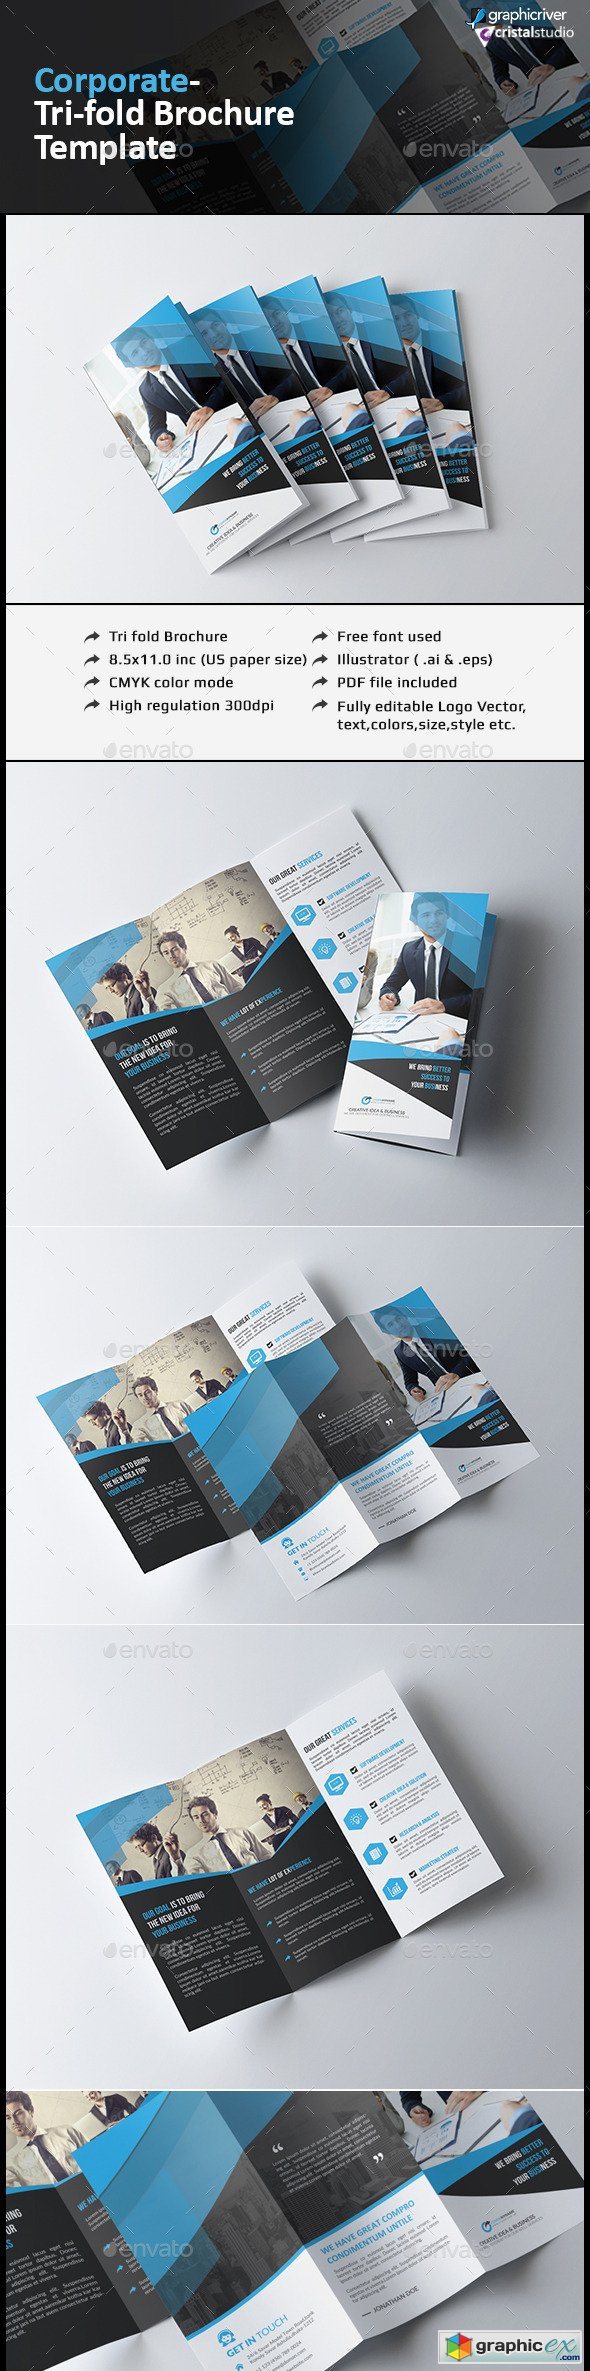 Corporate Tri-fold Brochure-Multipurpose 12532804